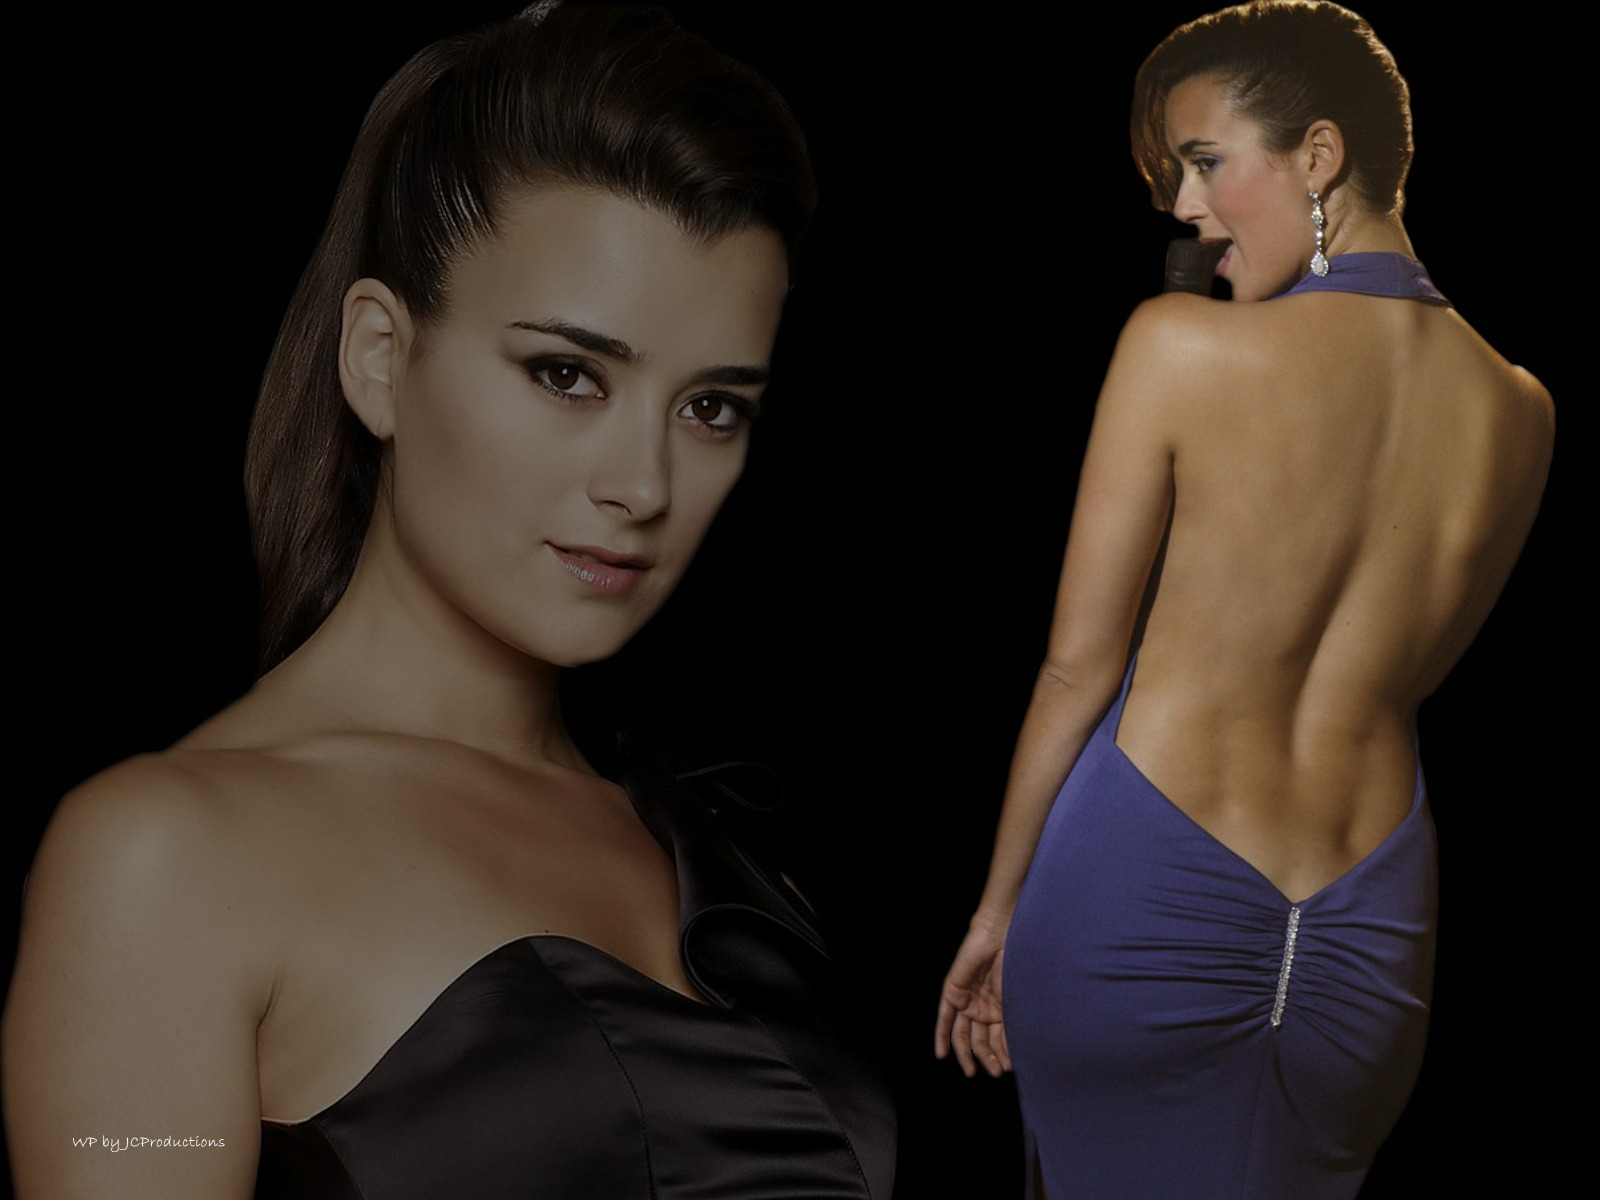 High quality NCIS, Ziva David, Blue Dress, Bare Back Cote de Pablo